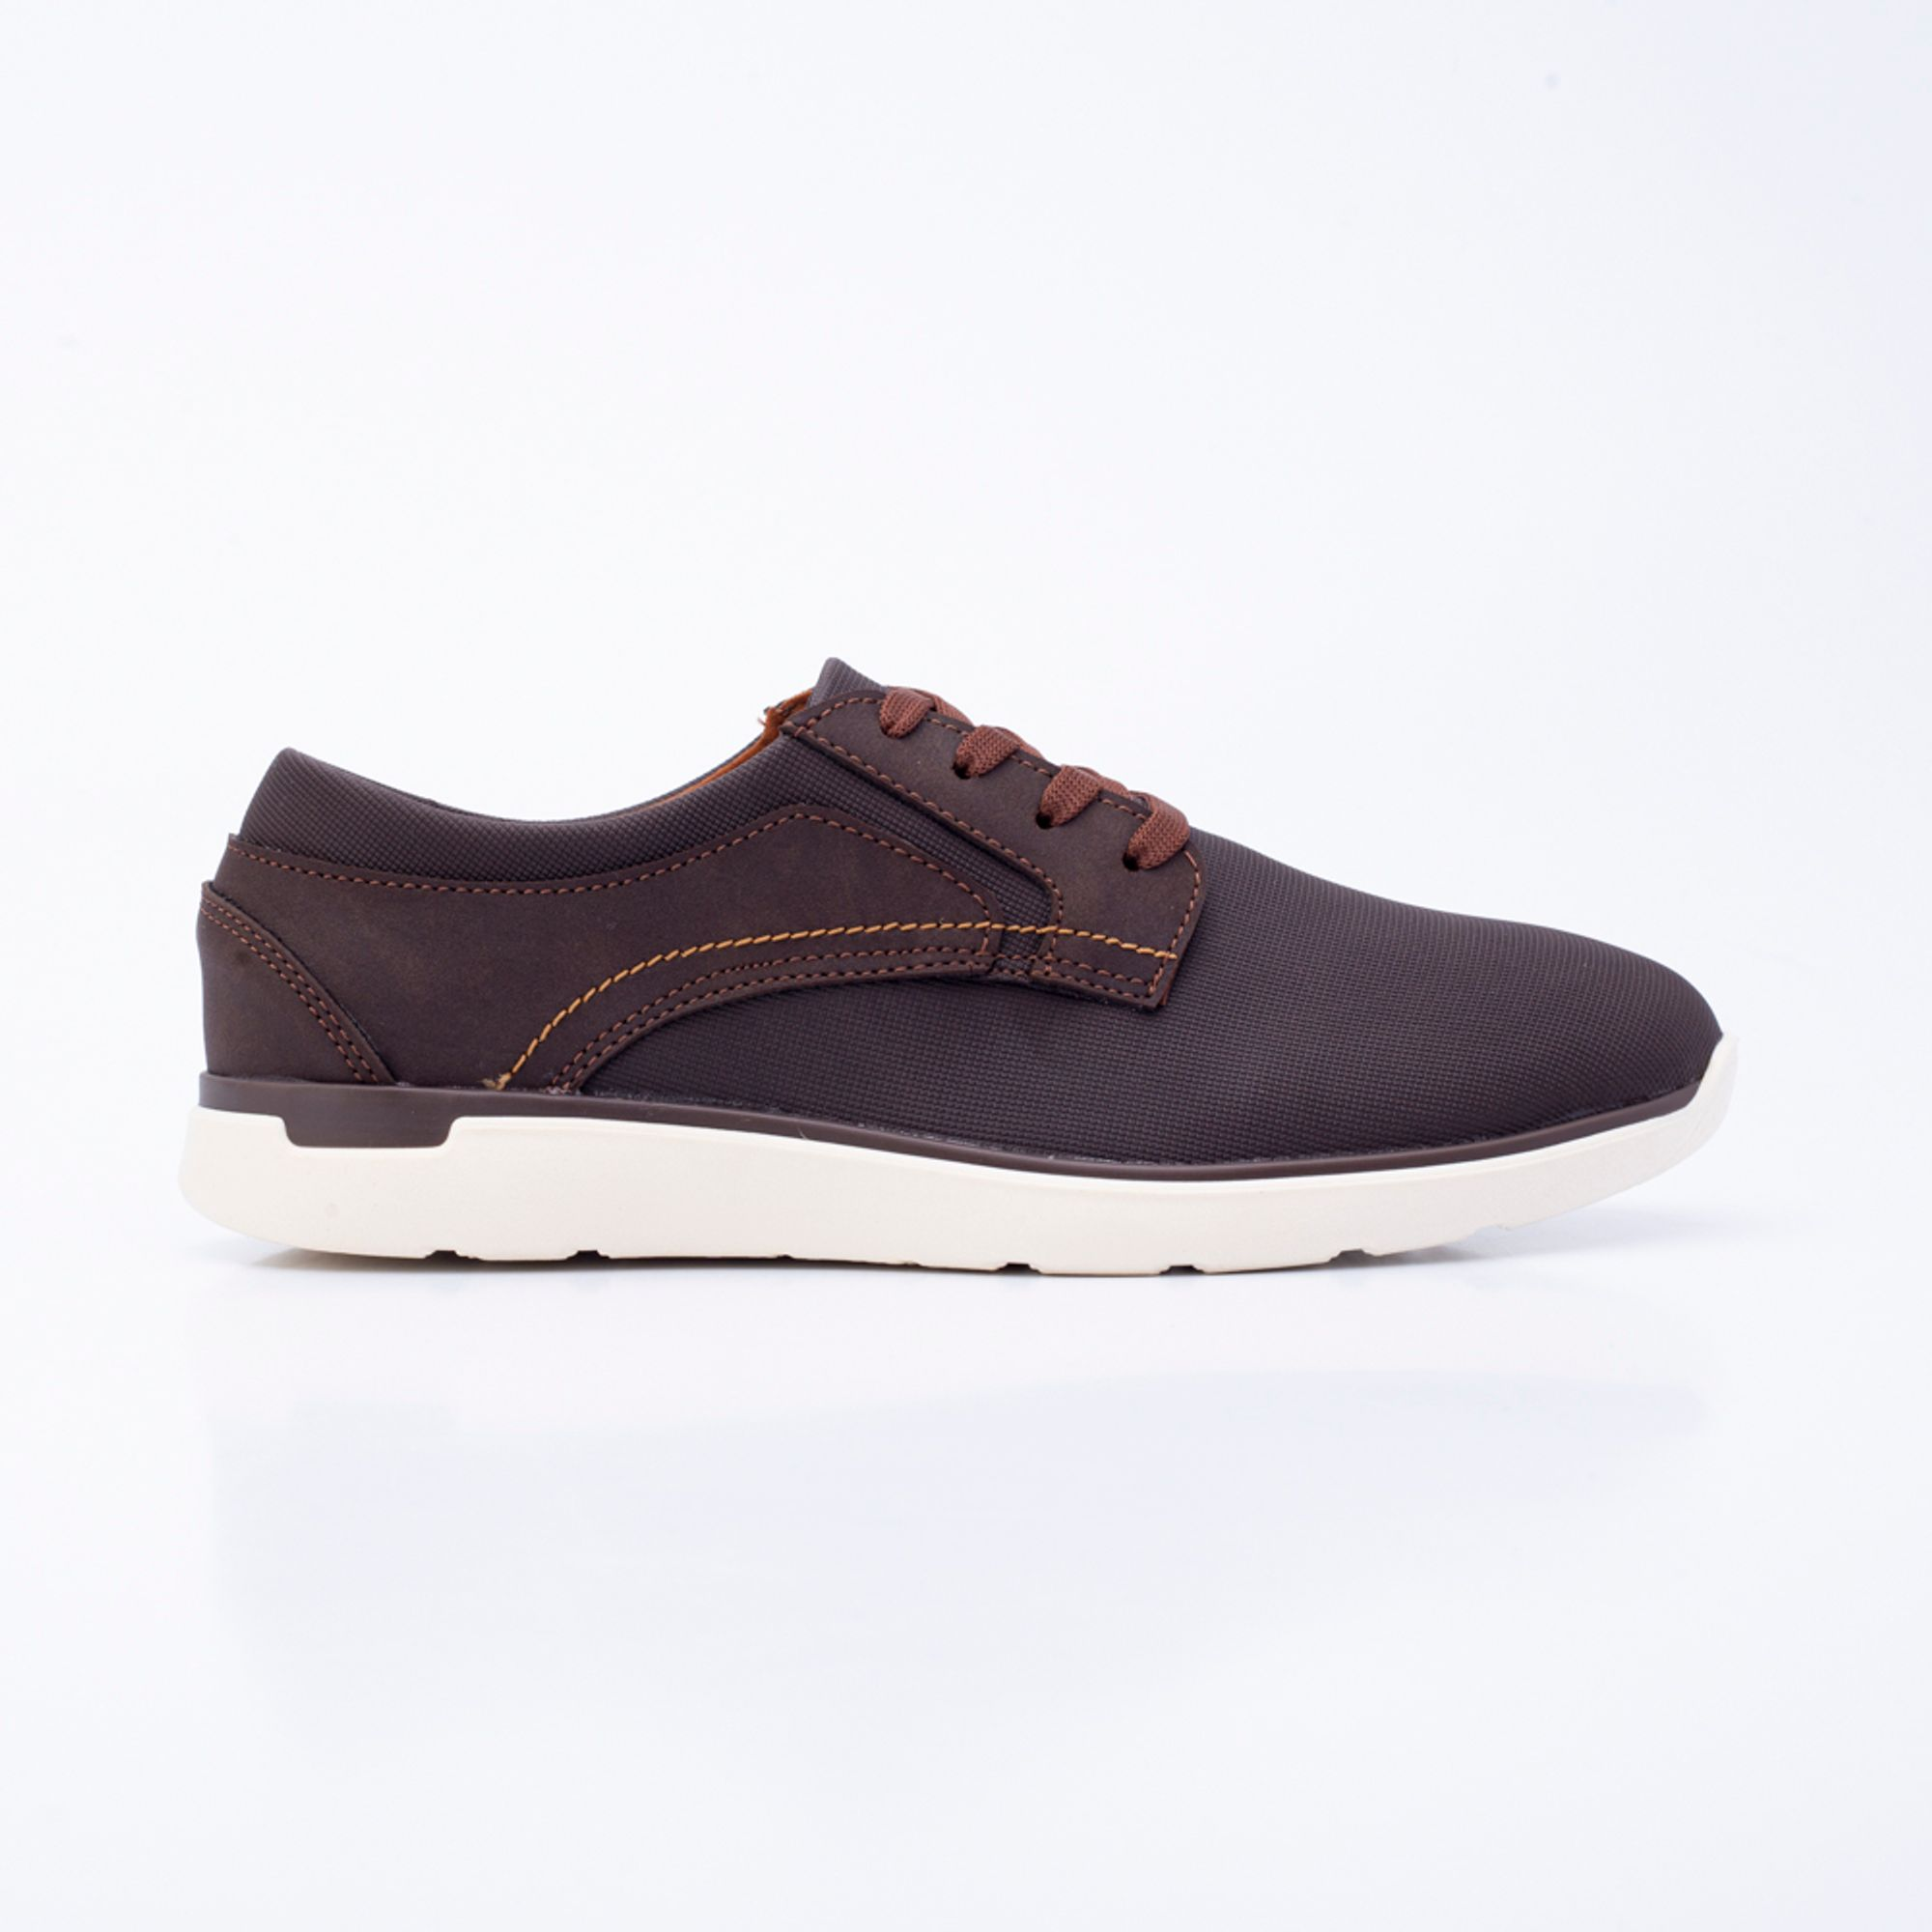 ZAPATOS-CASUALES-WORKER-HOMBRE-2646-IN-CI-MM-PL-SI